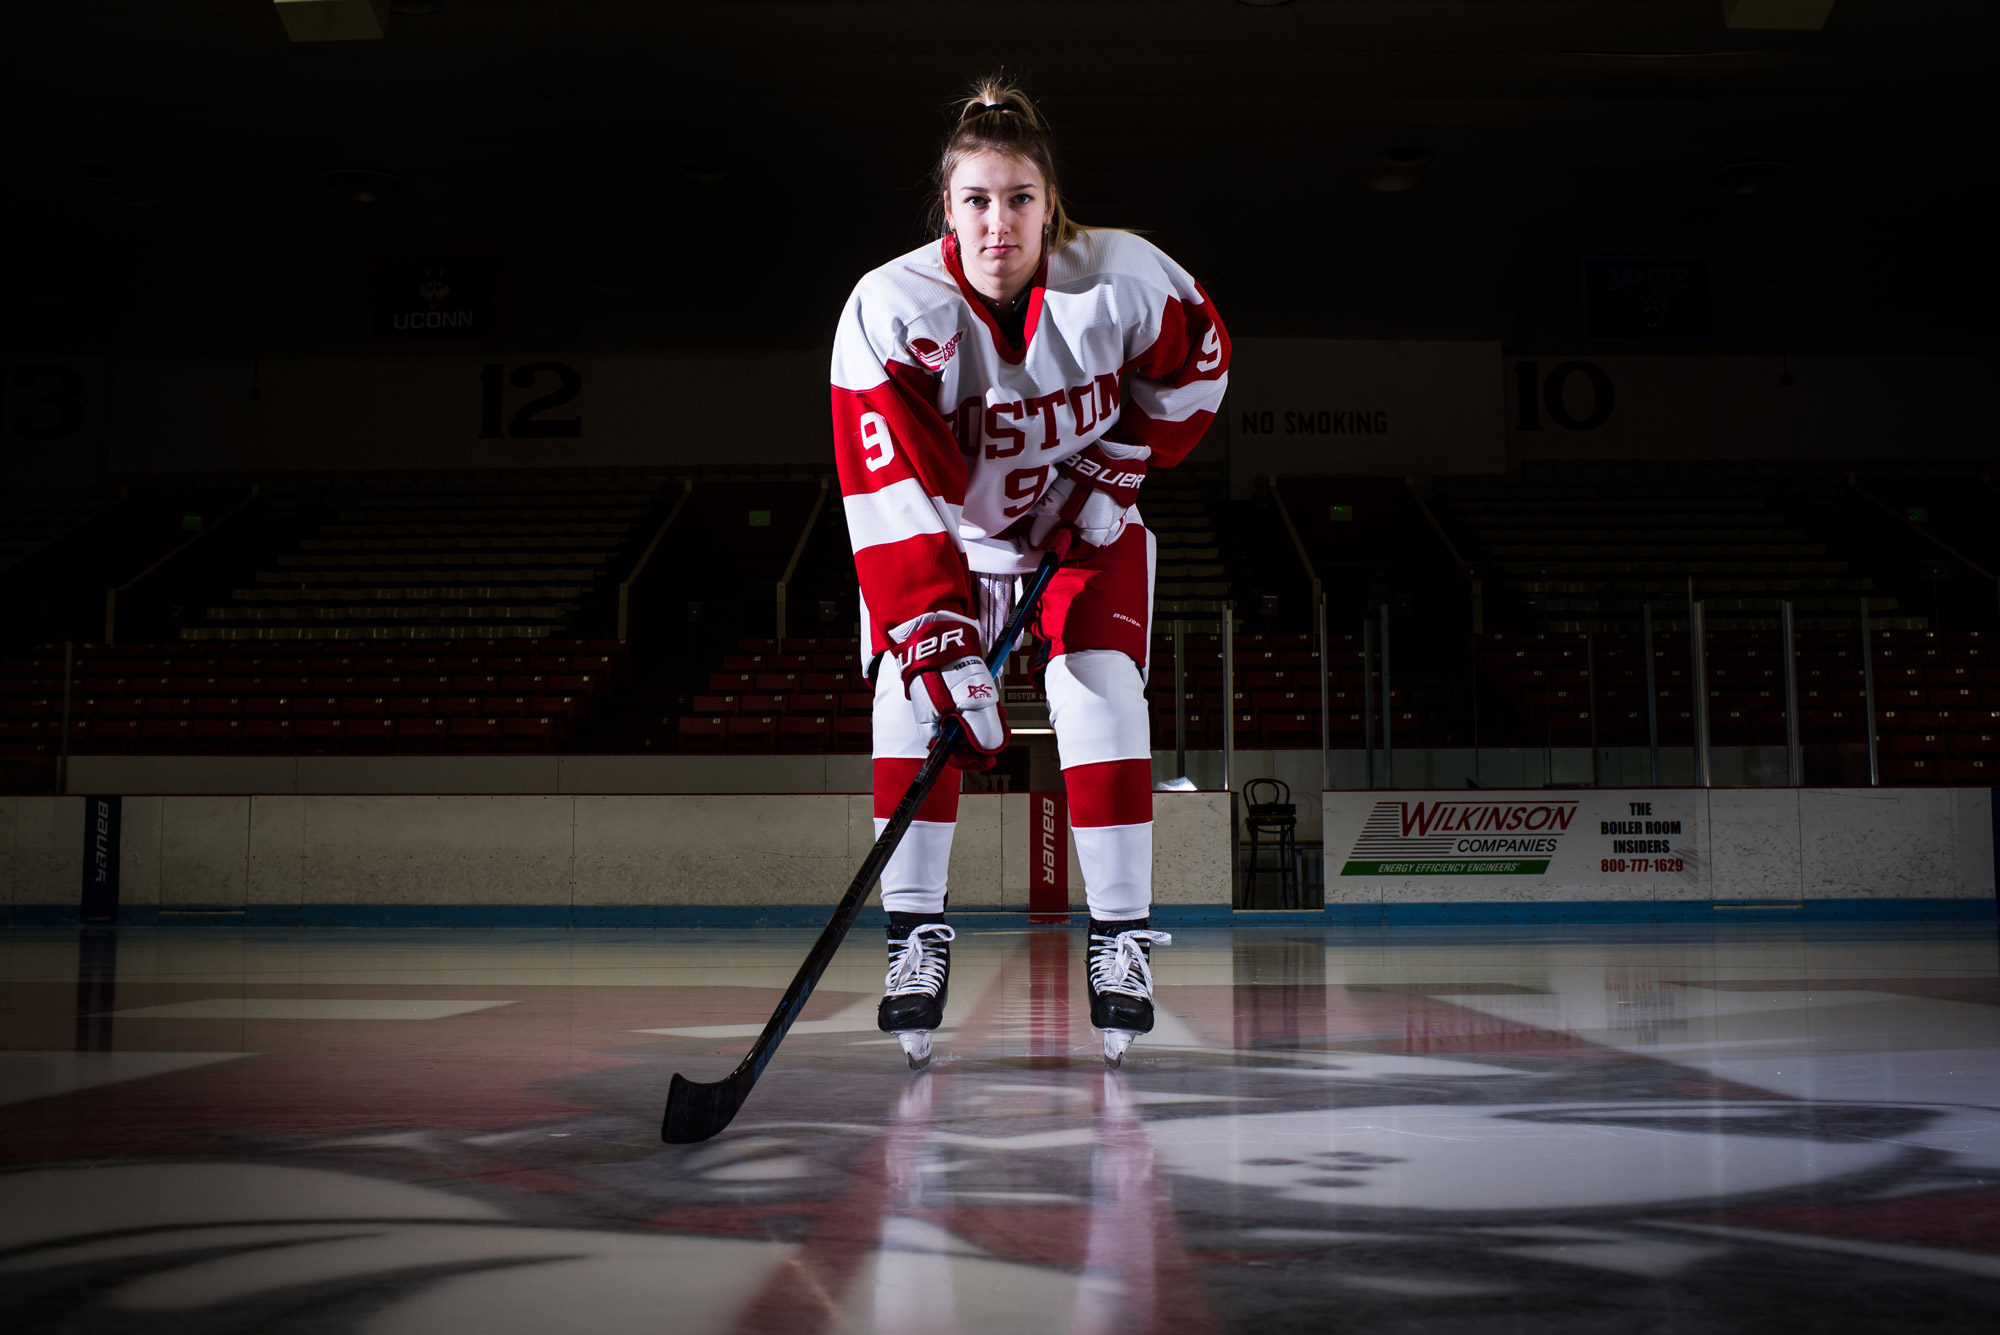 Abby Cook poses for a photo on the ice while wearing her hockey uniform